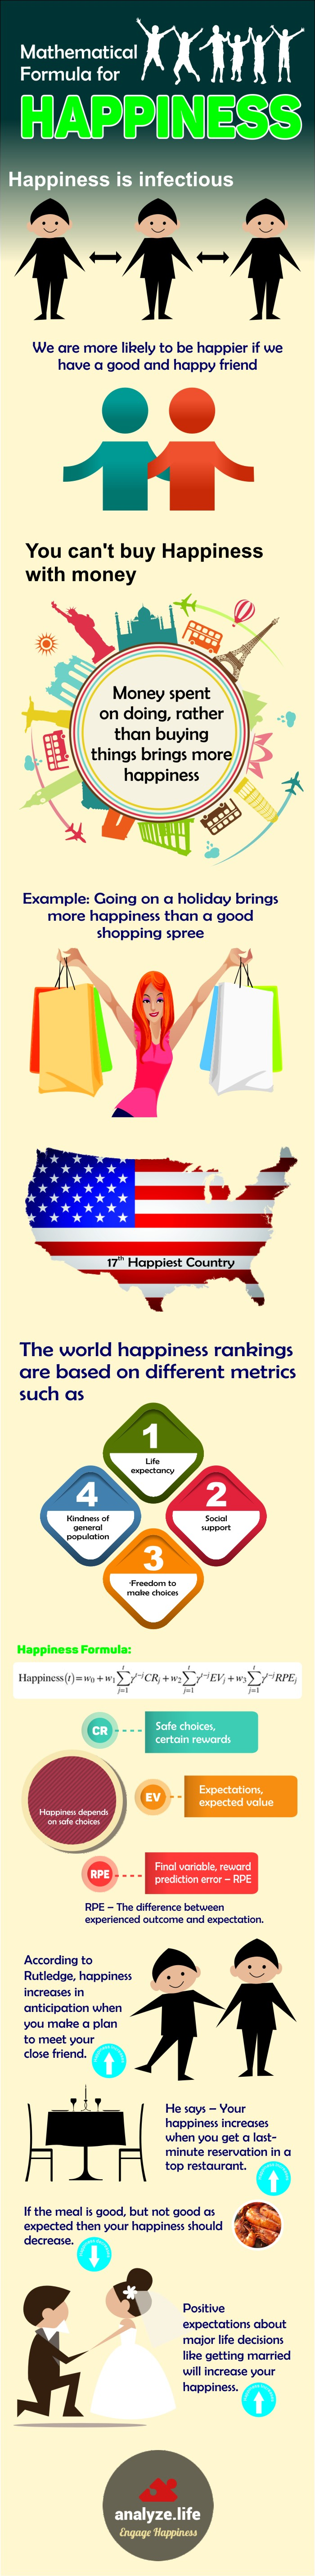 Mathematical Formula for Happiness Infographic